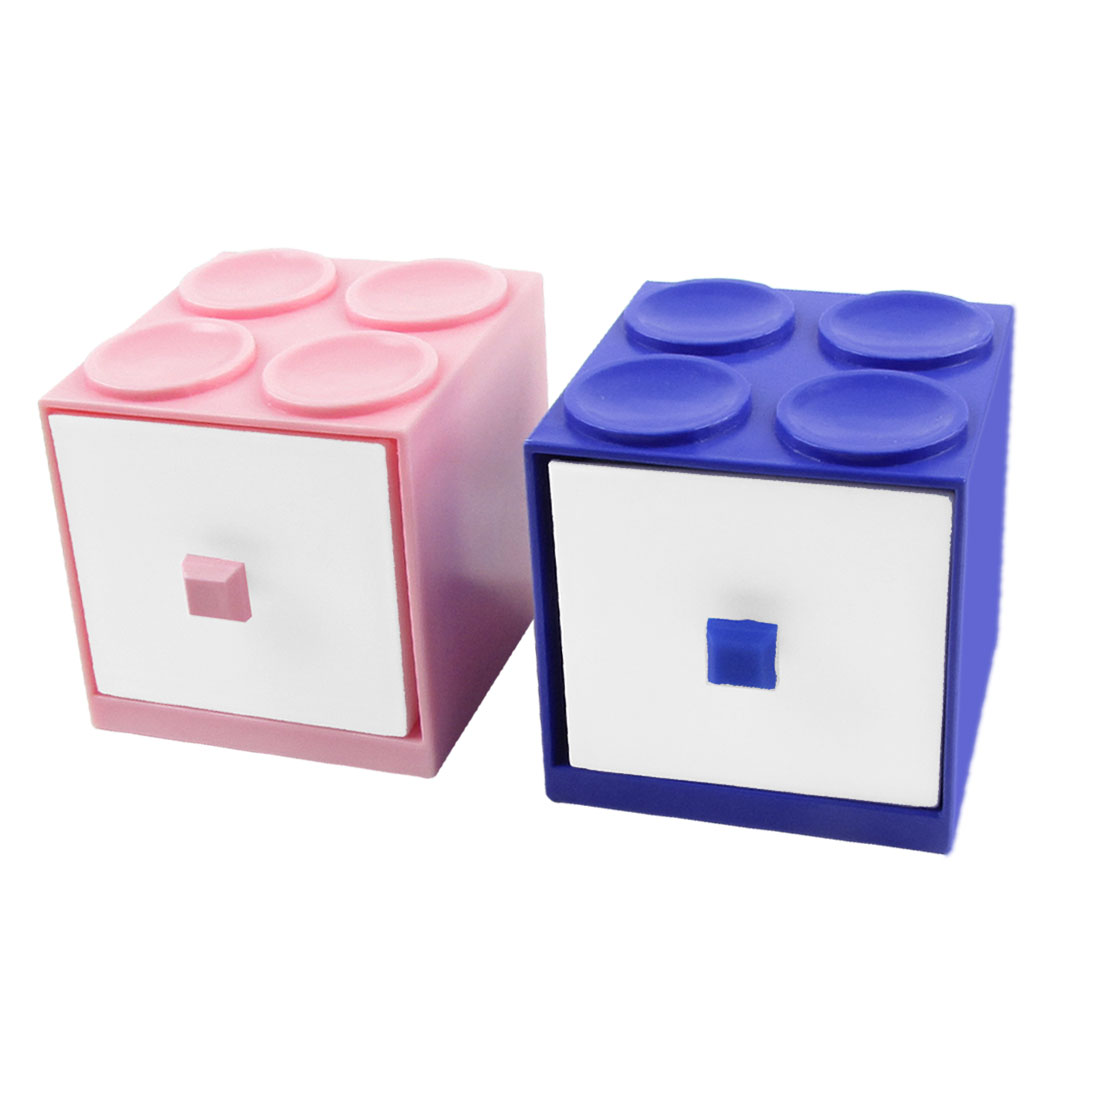 Hard Plastic Building Block 2 Layers Drawer Cabinet Storage Holder Pink Blue